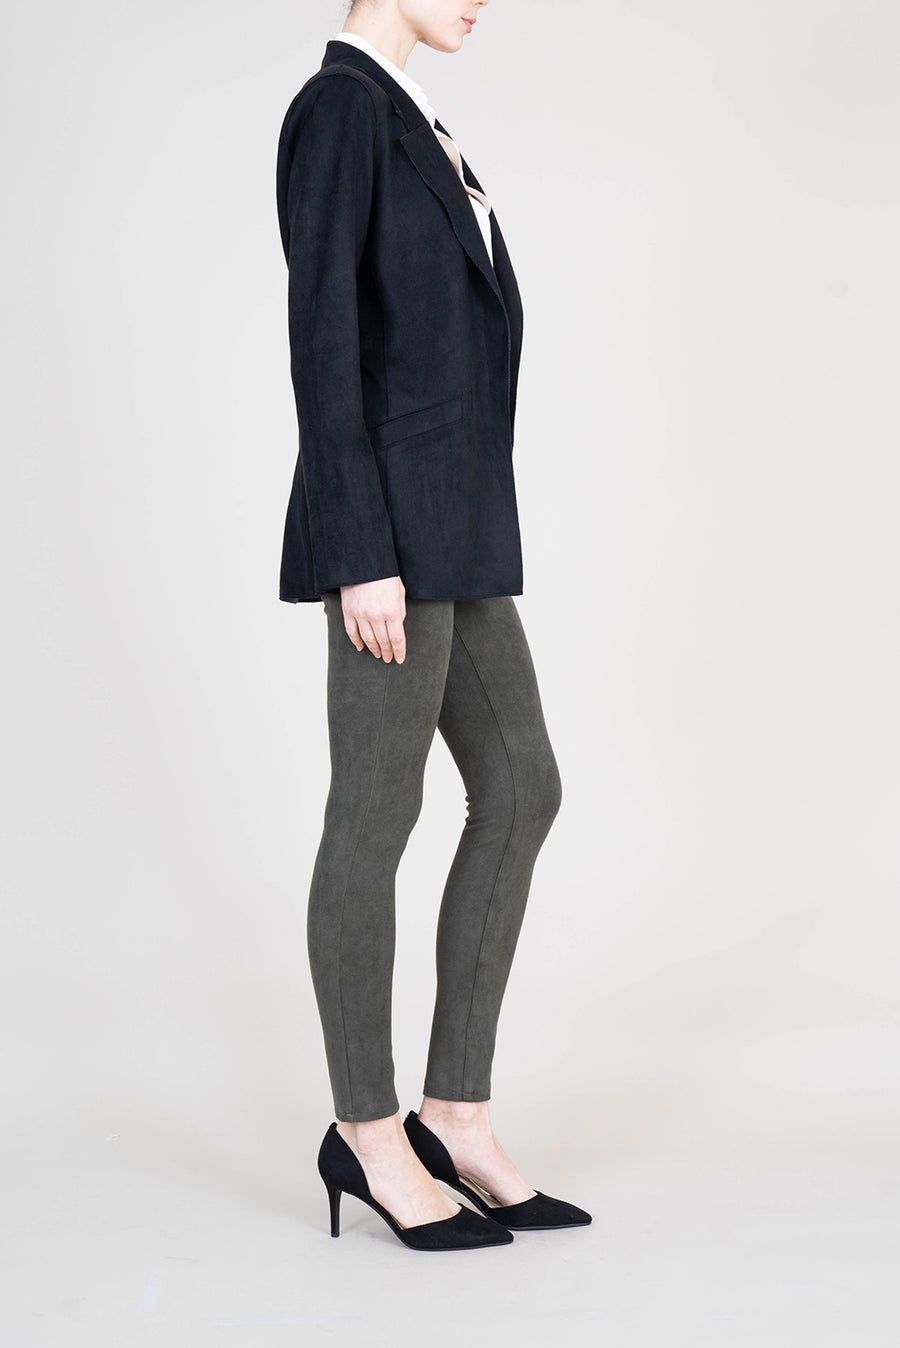 Rachel Oversized Blazer - level99jeans